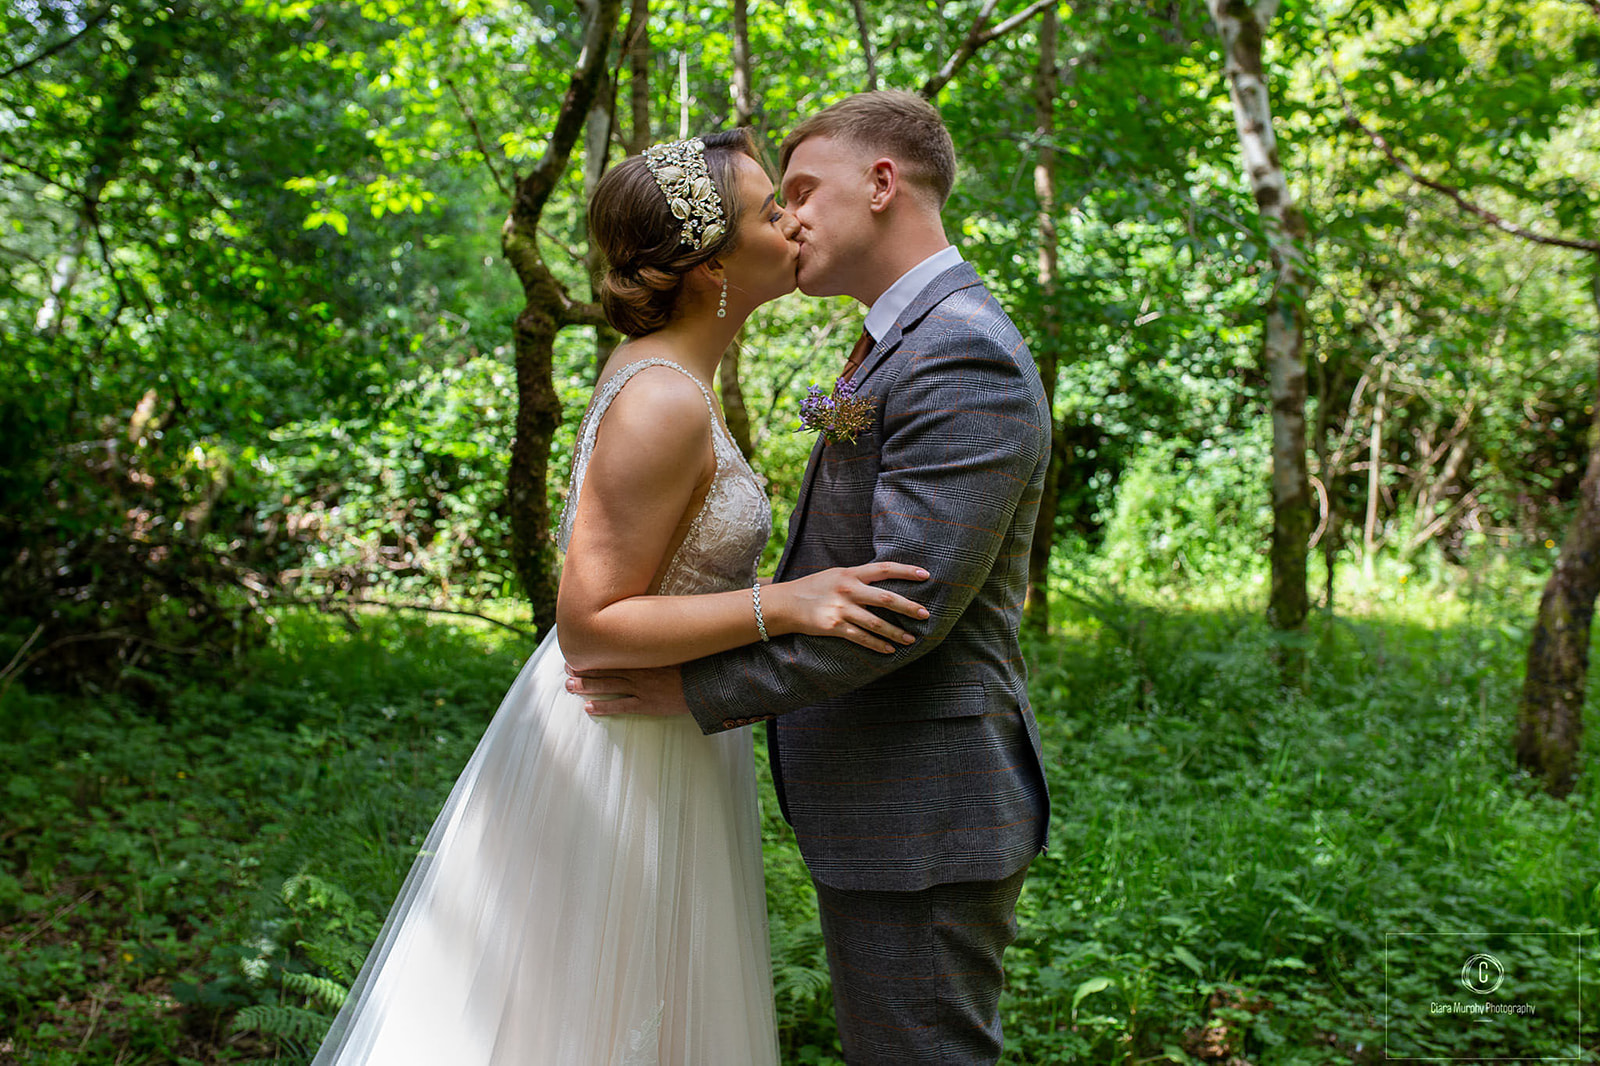 CORK WEDDING SUPPLIERS TEAM UP FOR A MAGICAL WEDDING SHOOT IN THE HEART OF WEST CORK